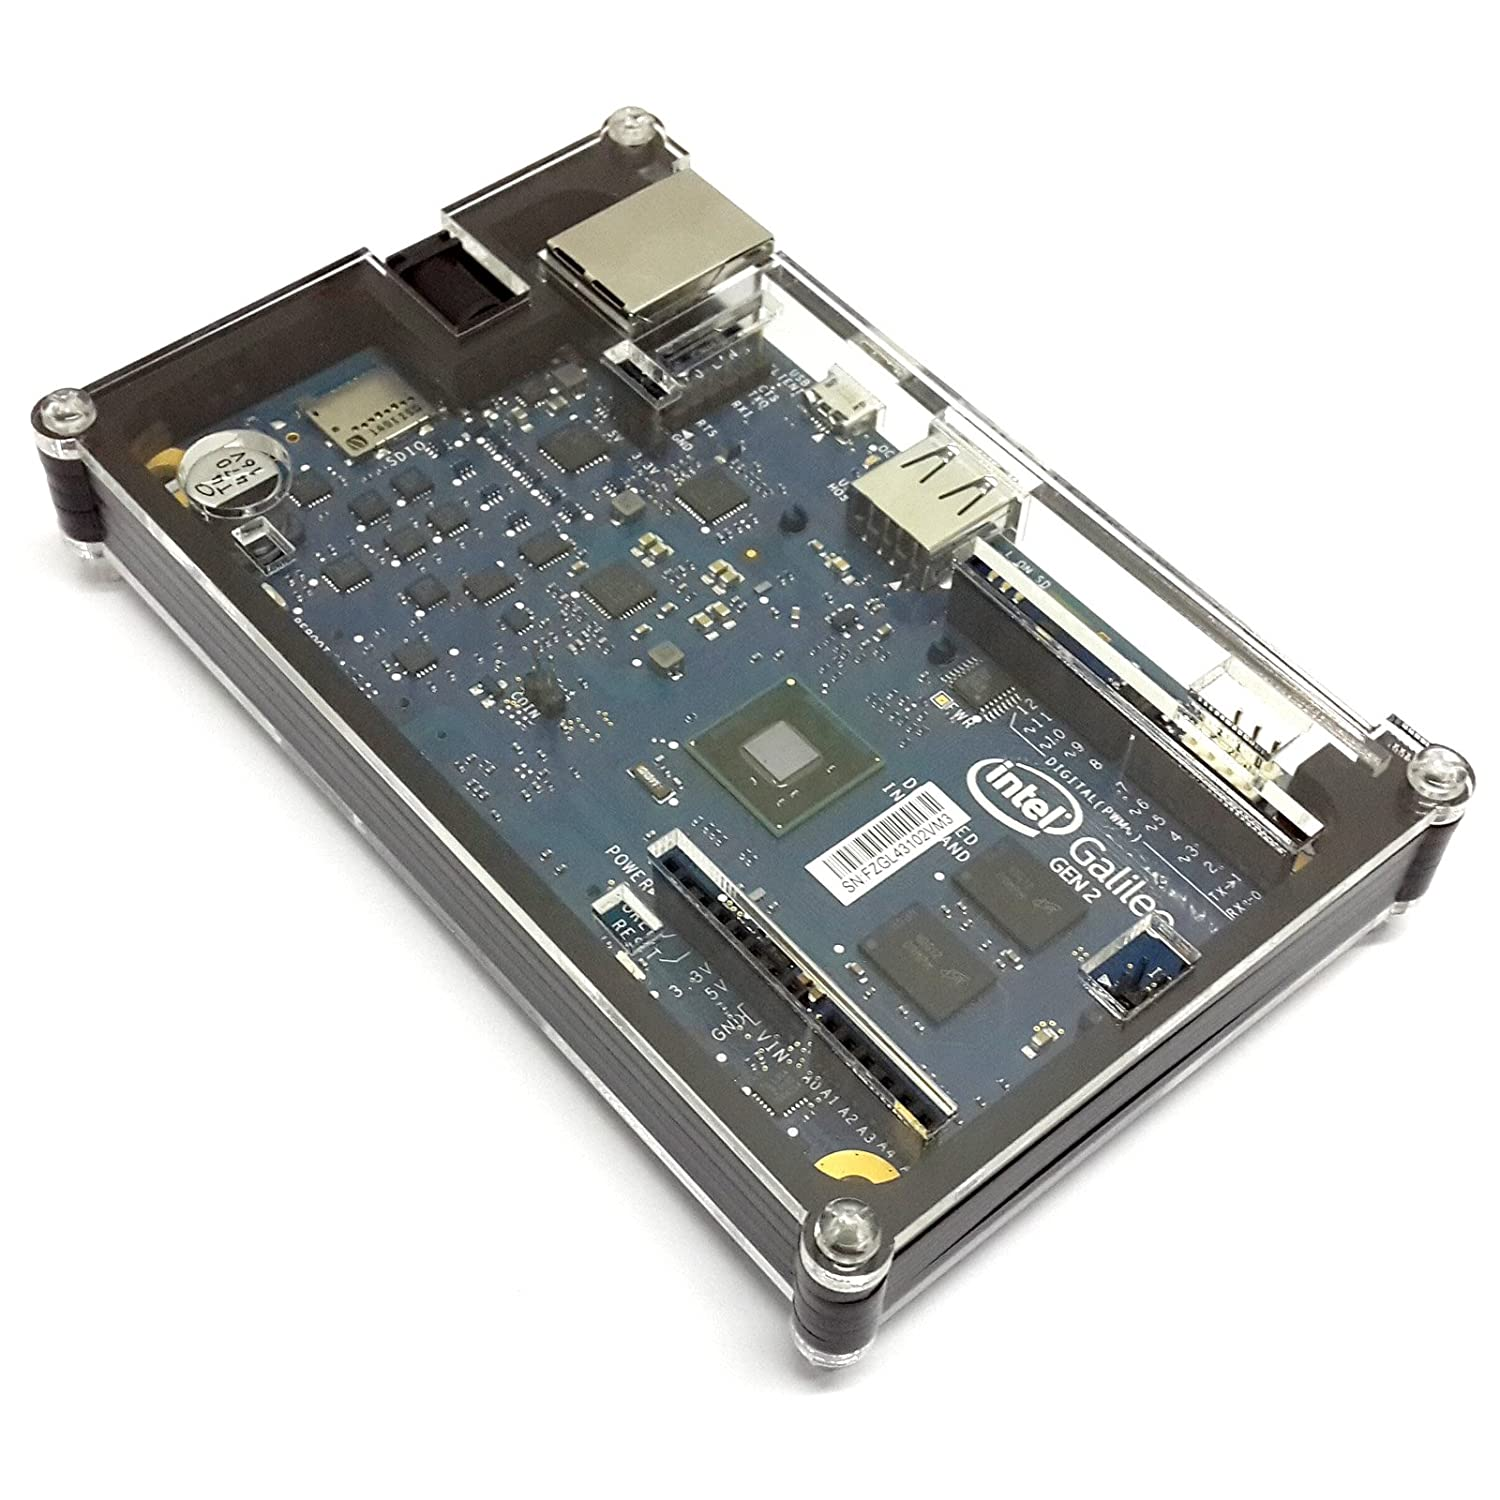 Eleduino Transparent Cover Box Enclosure For Intel Galileo Gen 2 Electronics Circuit Components Printed Boards Hi Resolution Images